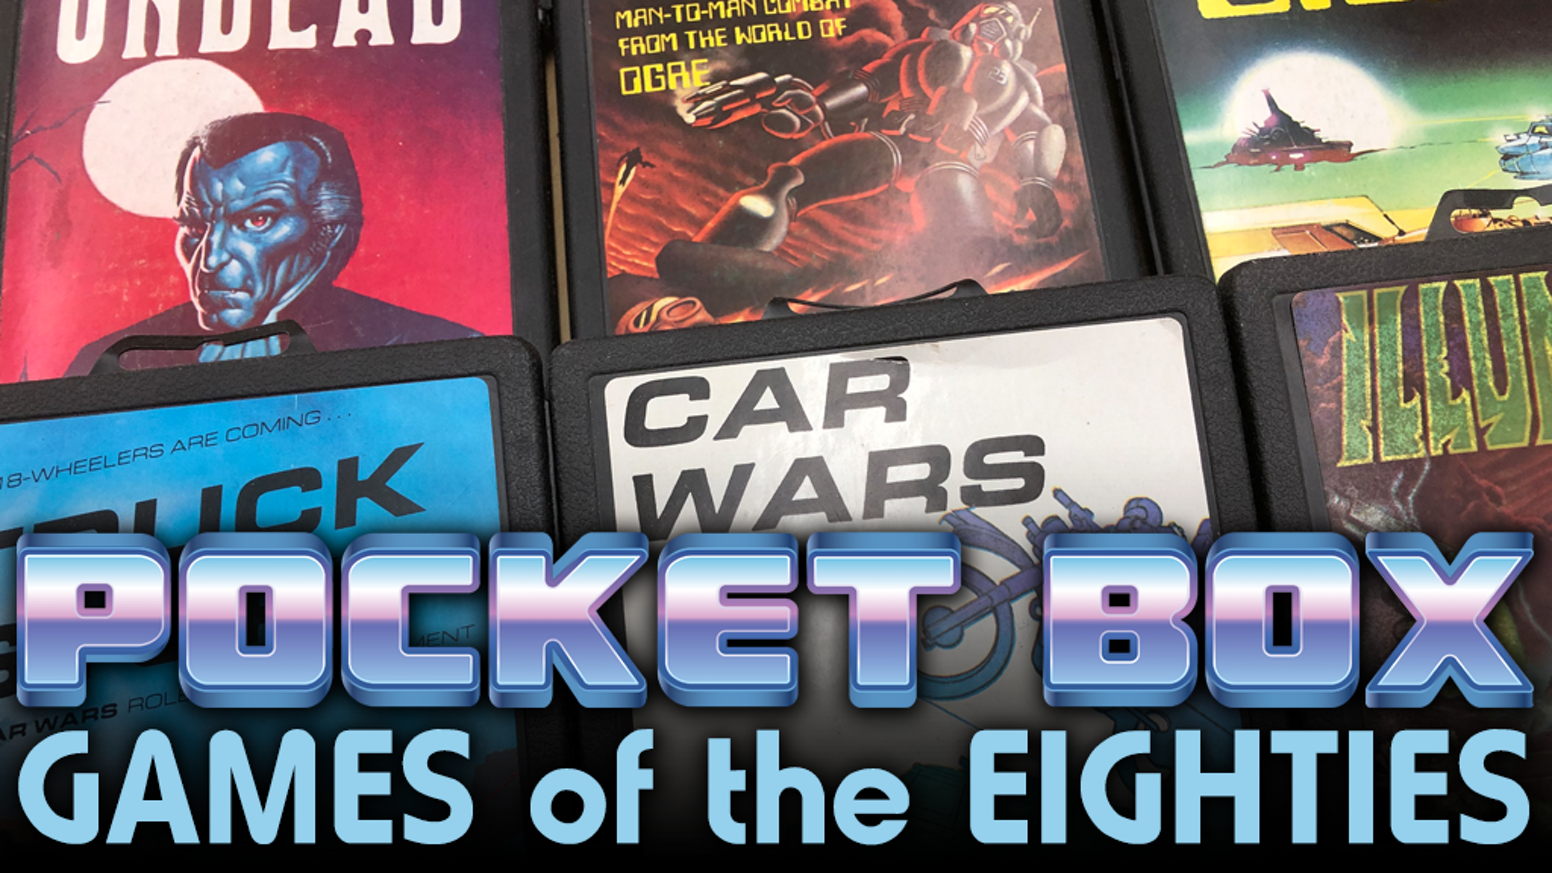 Help us create reproductions of the classic Steve Jackson Games Pocket Box titles of the eighties.